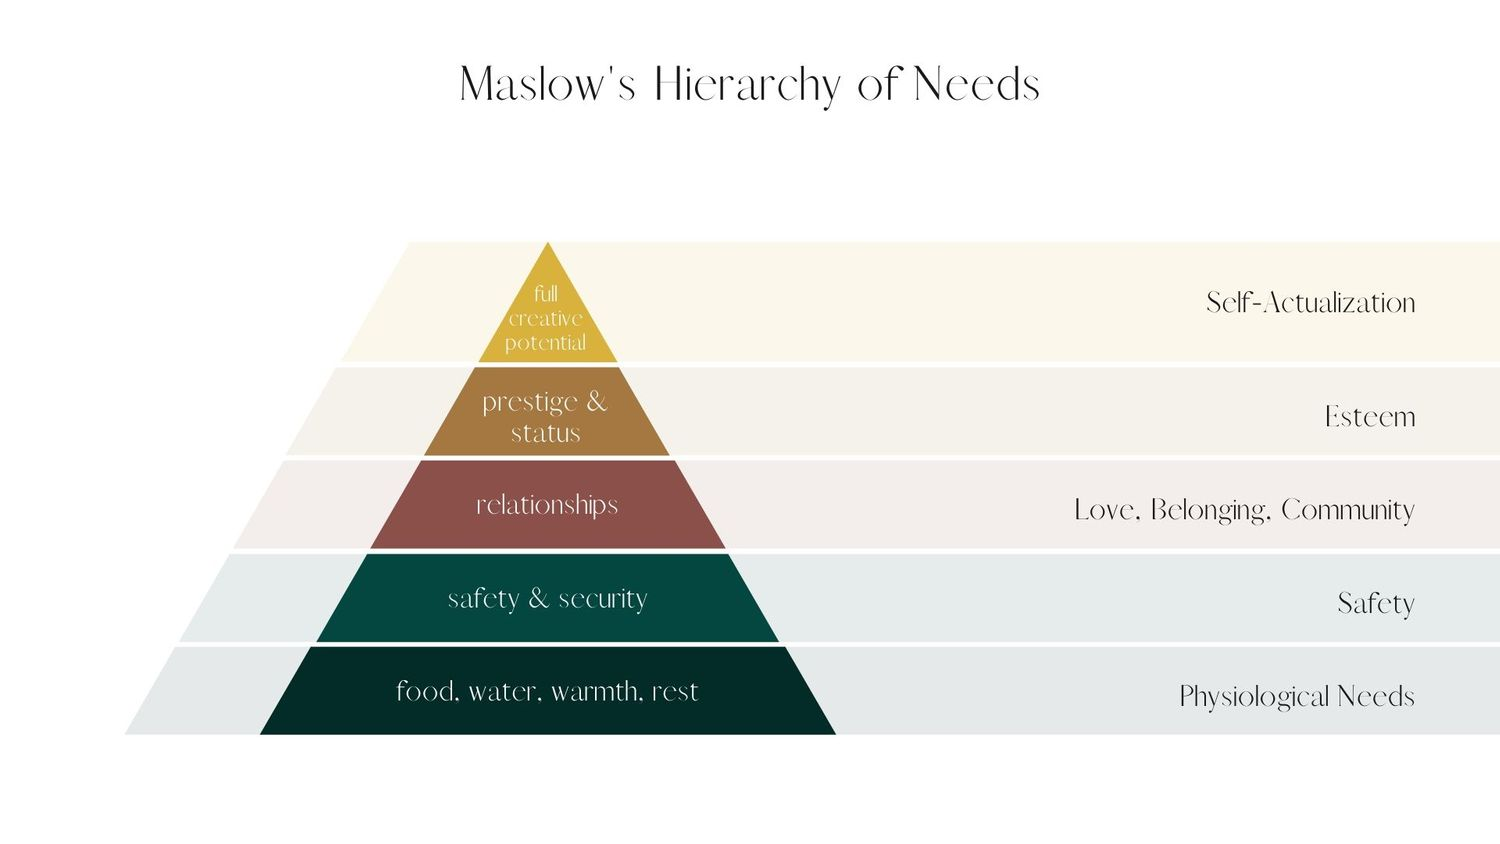 graphic of a pyramid describing Maslow's Hierarchy of Needs